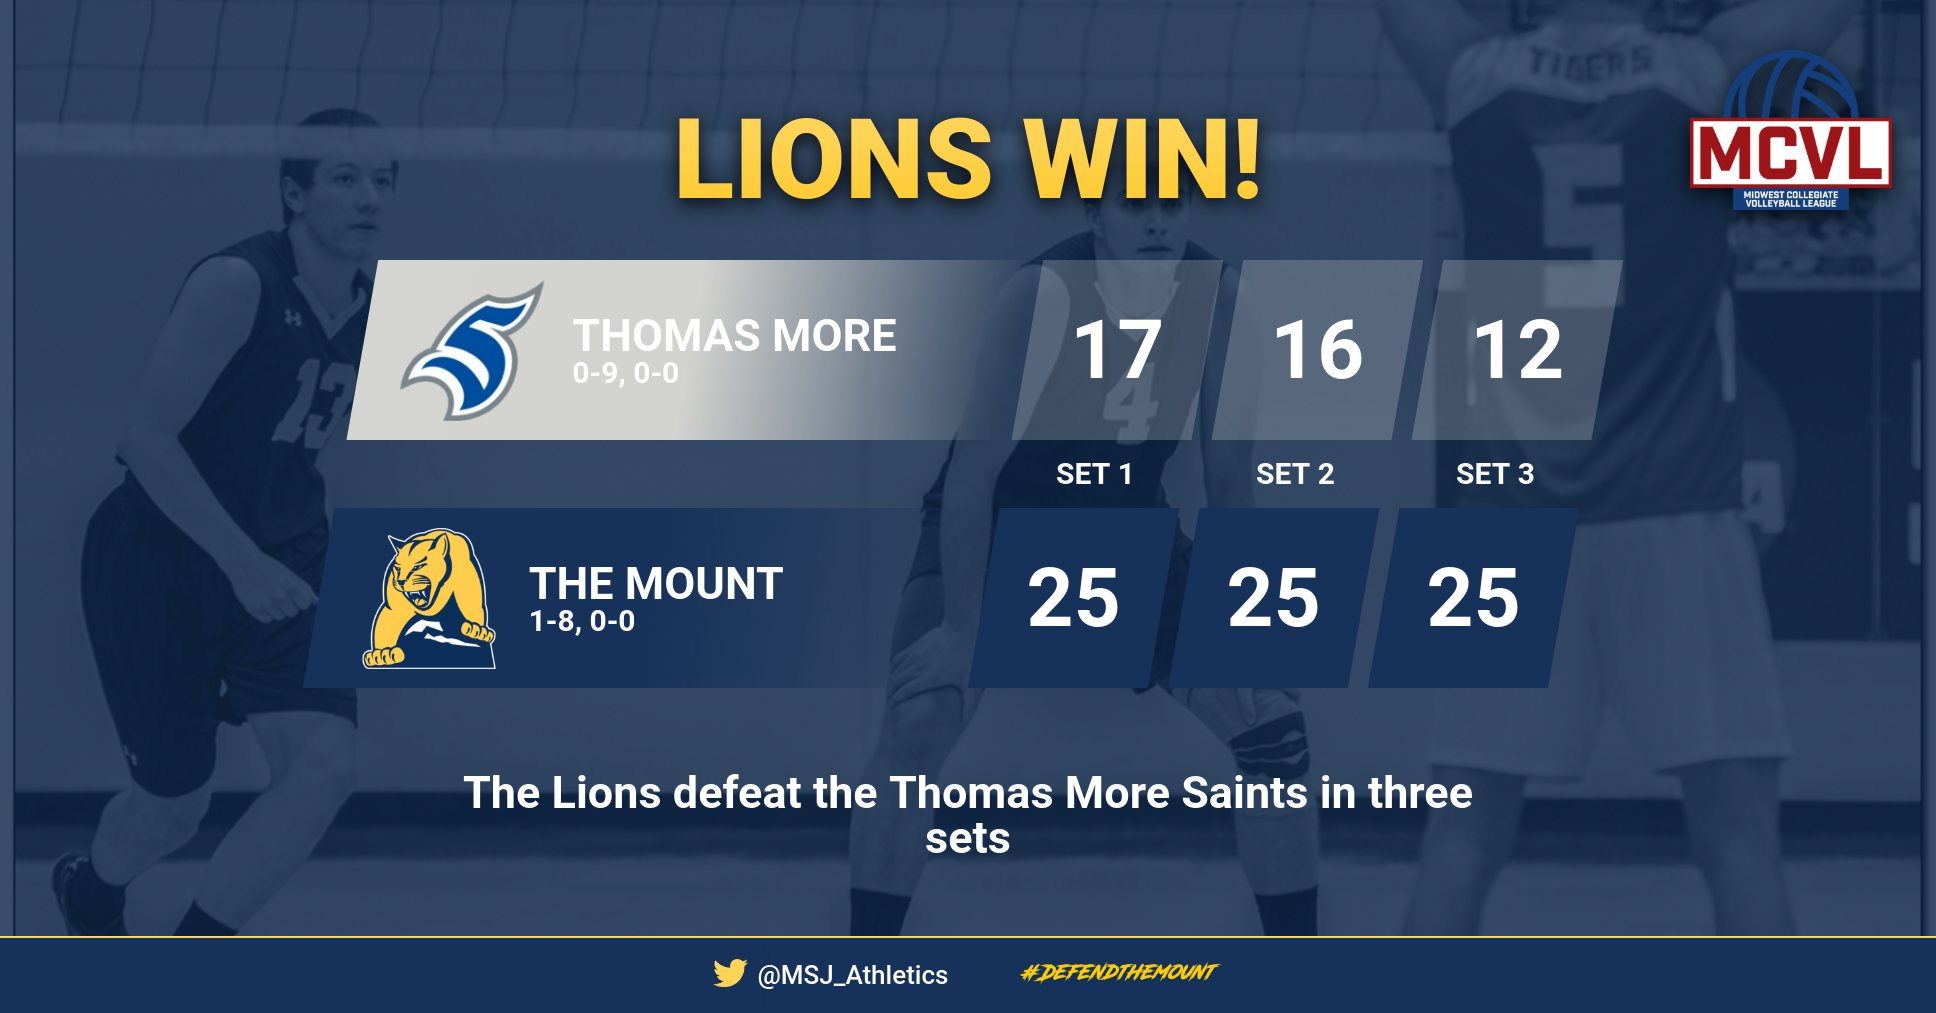 Lions earn first win at home tri-match